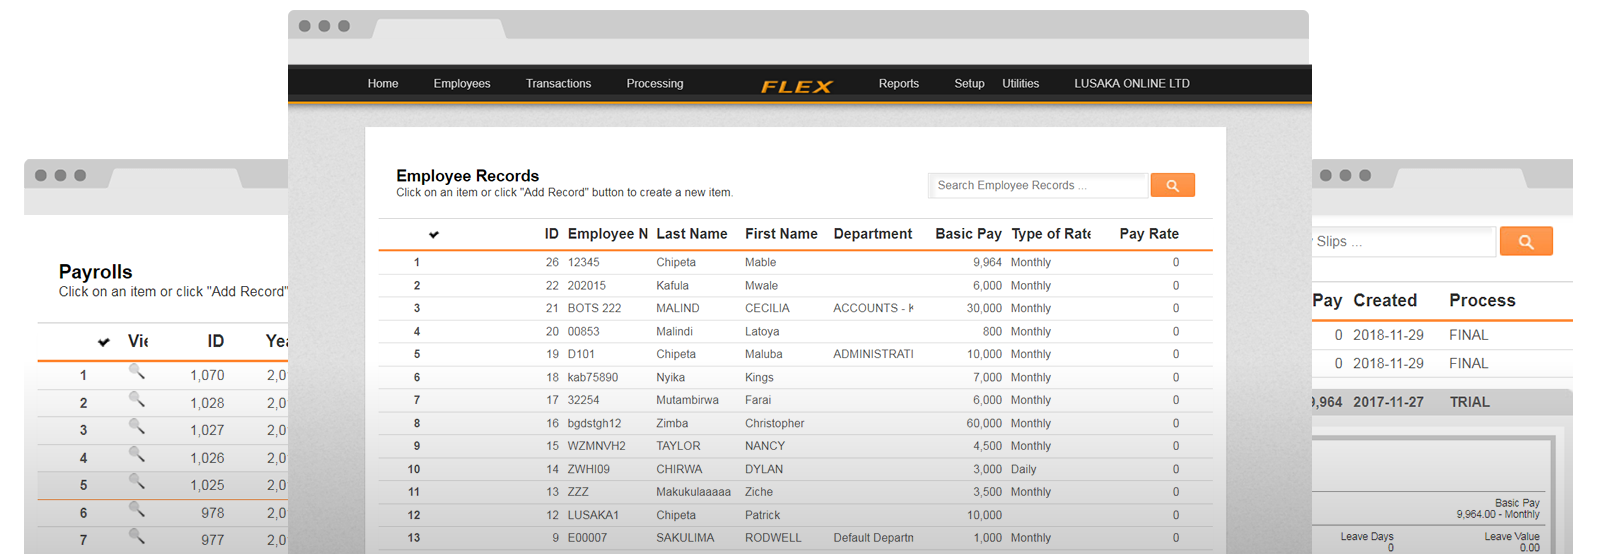 FLEX Payroll - Zambia's Online Payroll System - FREE for SMEs!